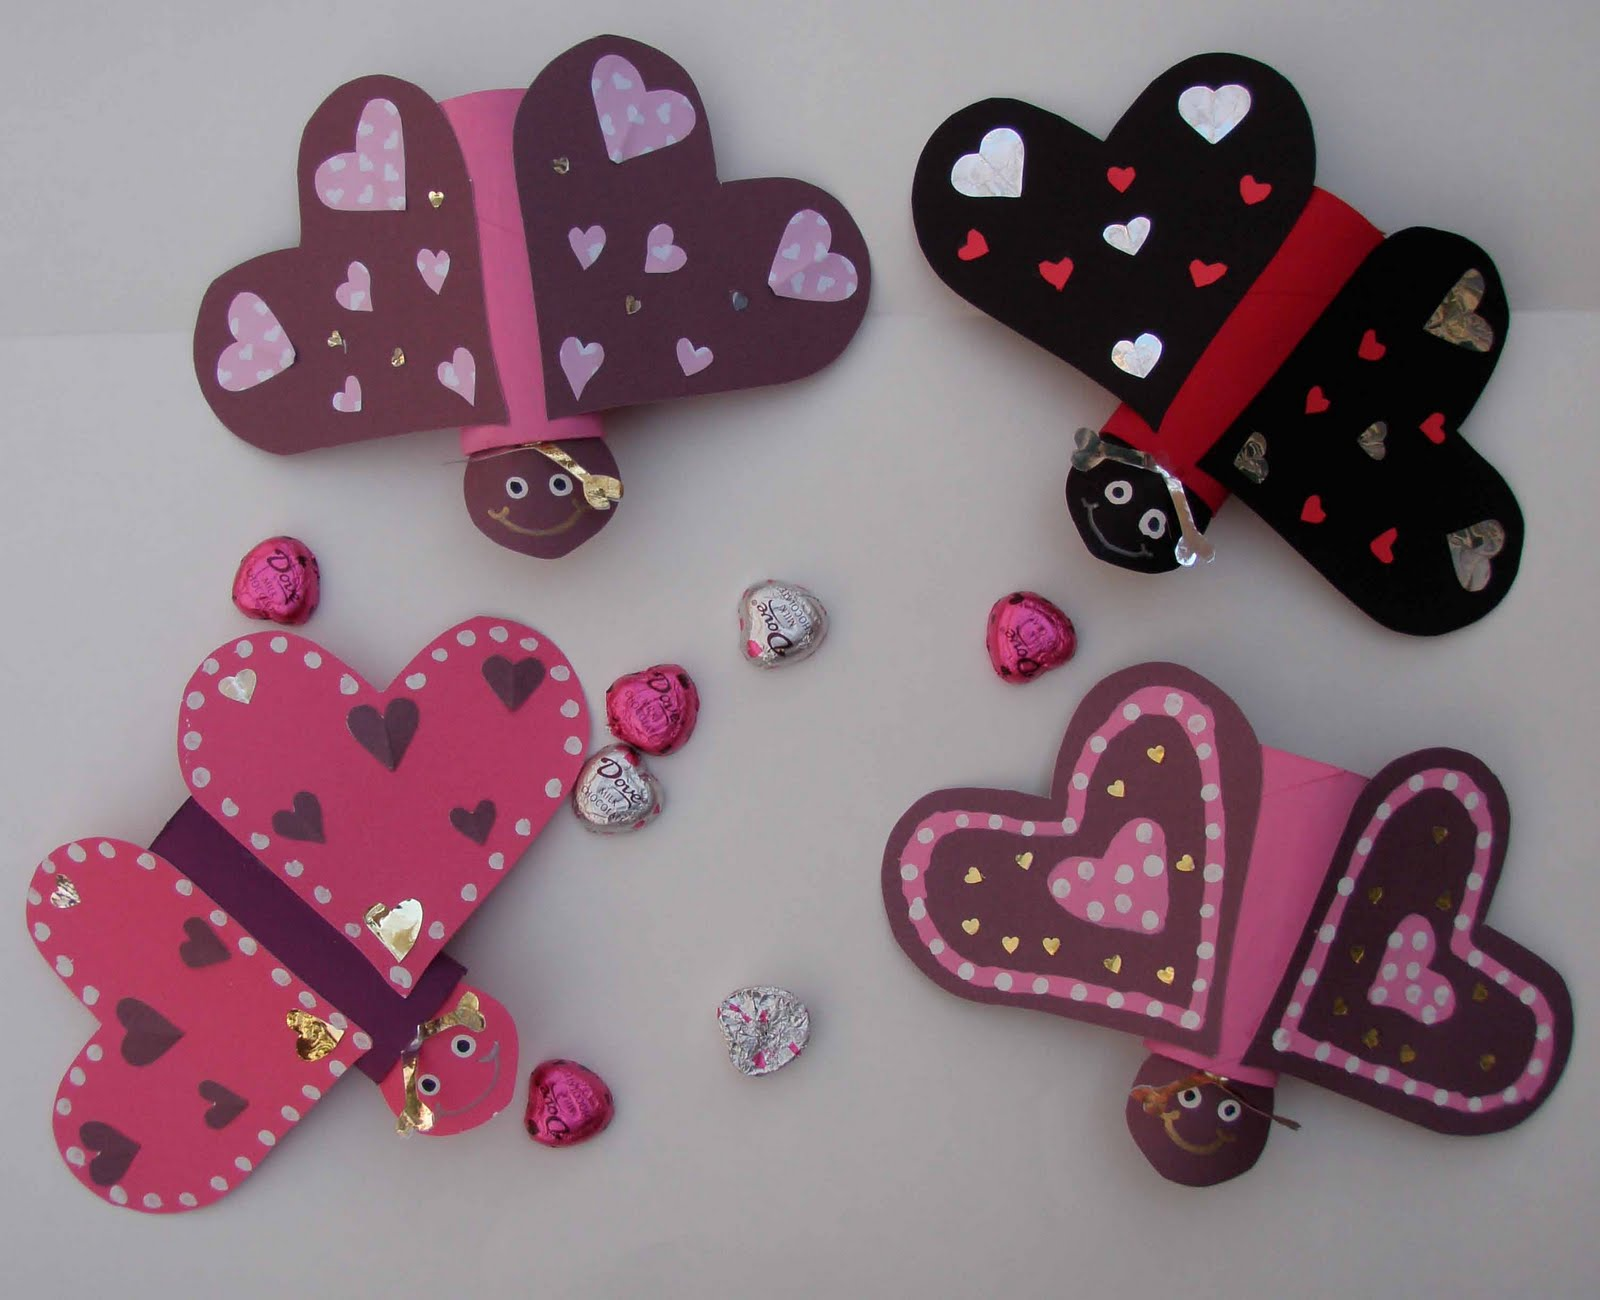 Valentine love bug craft - Craft Cute Love Bugs As Decorations For Your Valentine S Day Celebration All You Need Is A Paper Tube Toilet Paper Or Sections Of Paper Towel Tube